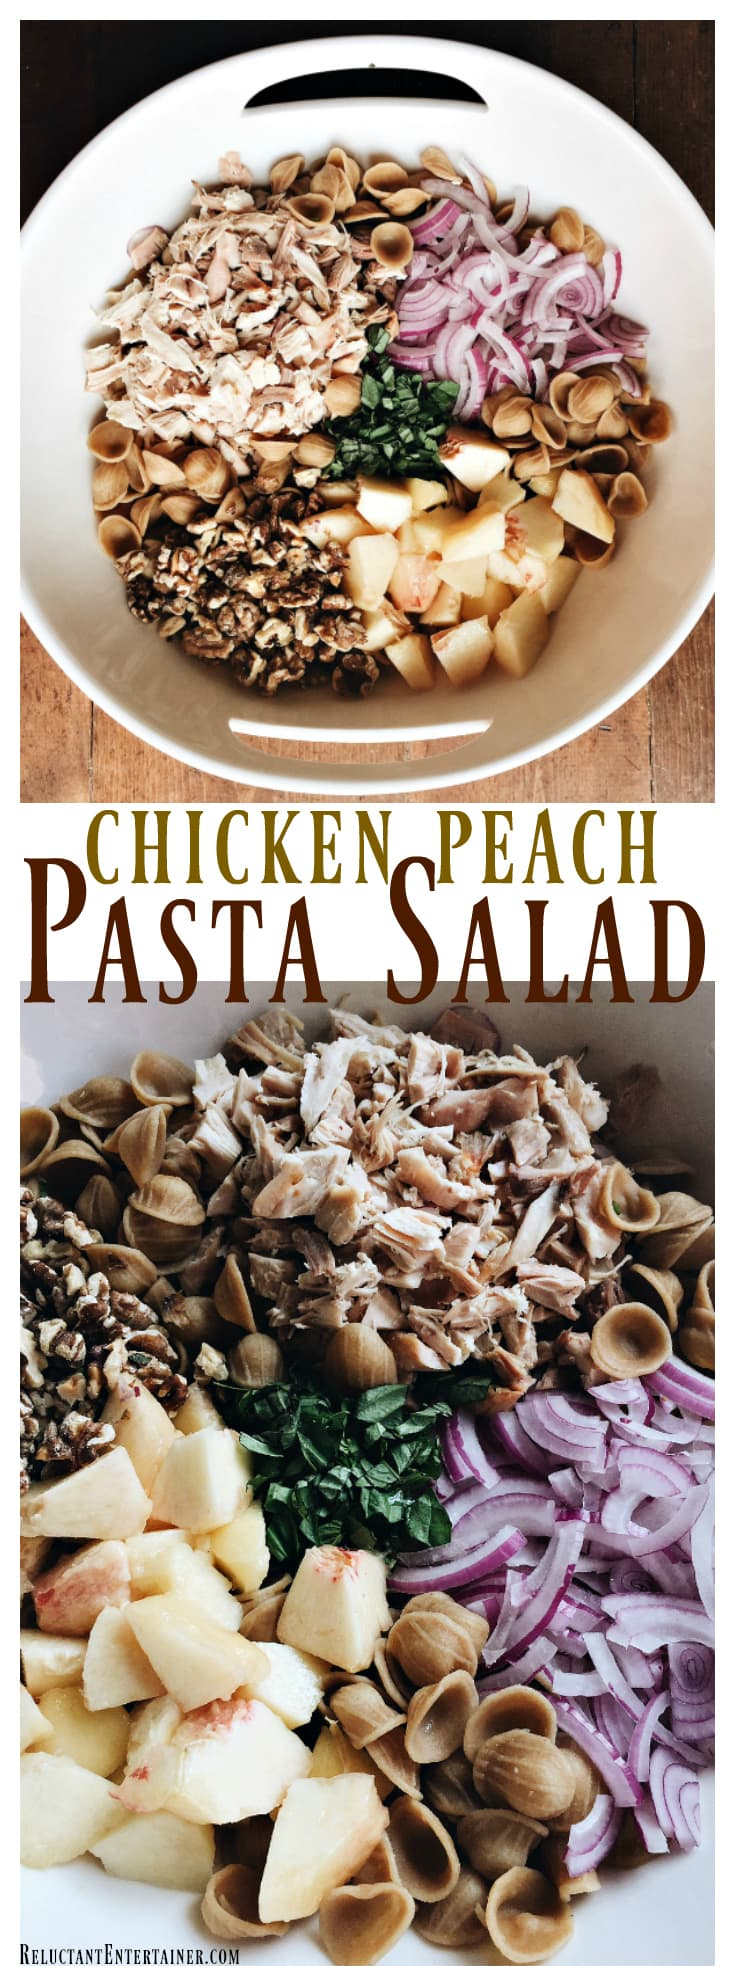 Chicken Peach Pasta Salad for summer entertaining | ReluctantEntertainer.com